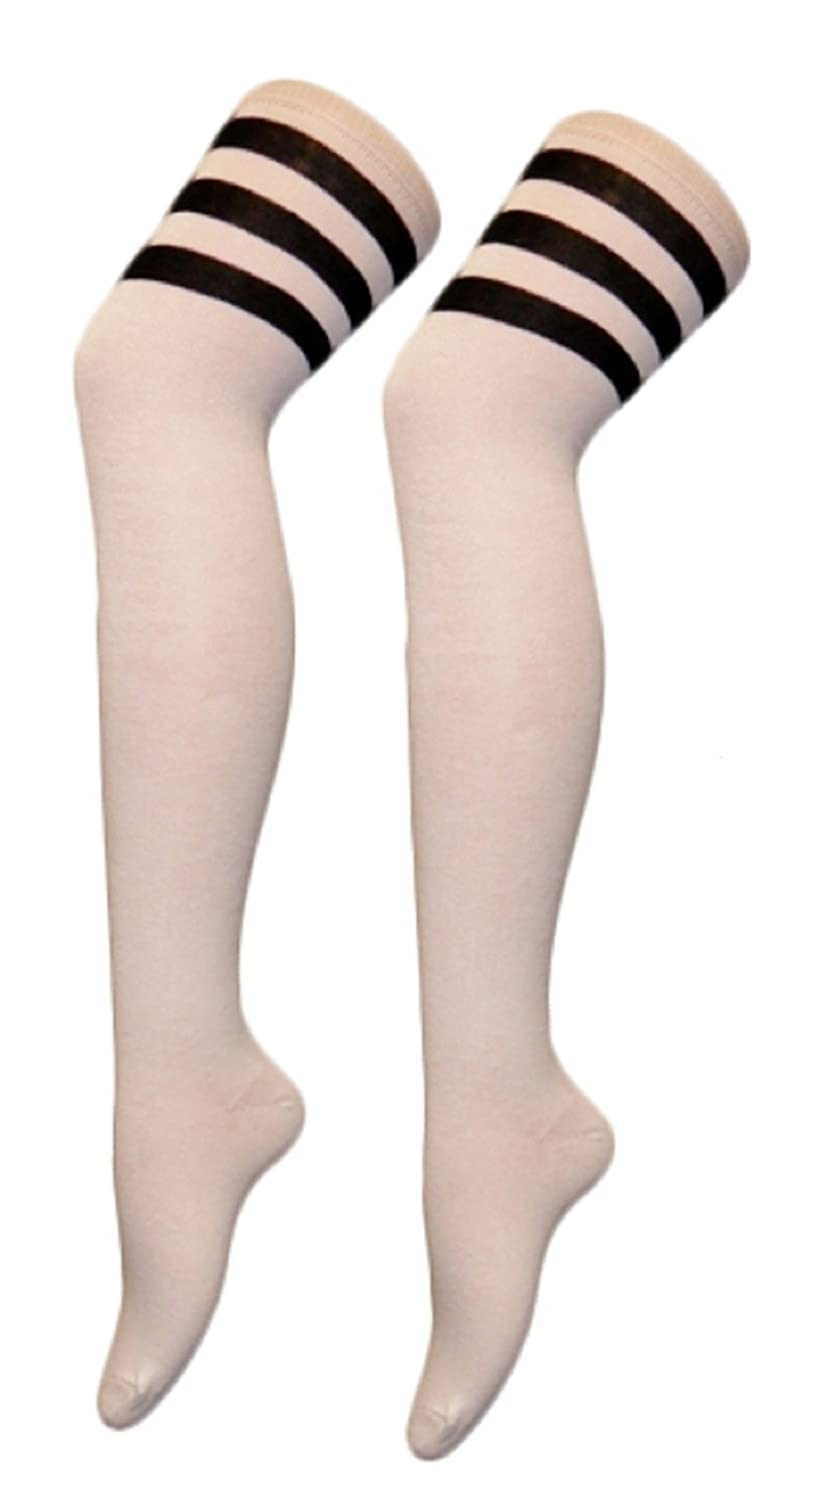 Momo/&Ayat Fashions Unisexe Mens Ladies Girls Boys Over Knee Referee Chaussettes Sport ou Fancy Dress Rugby Football